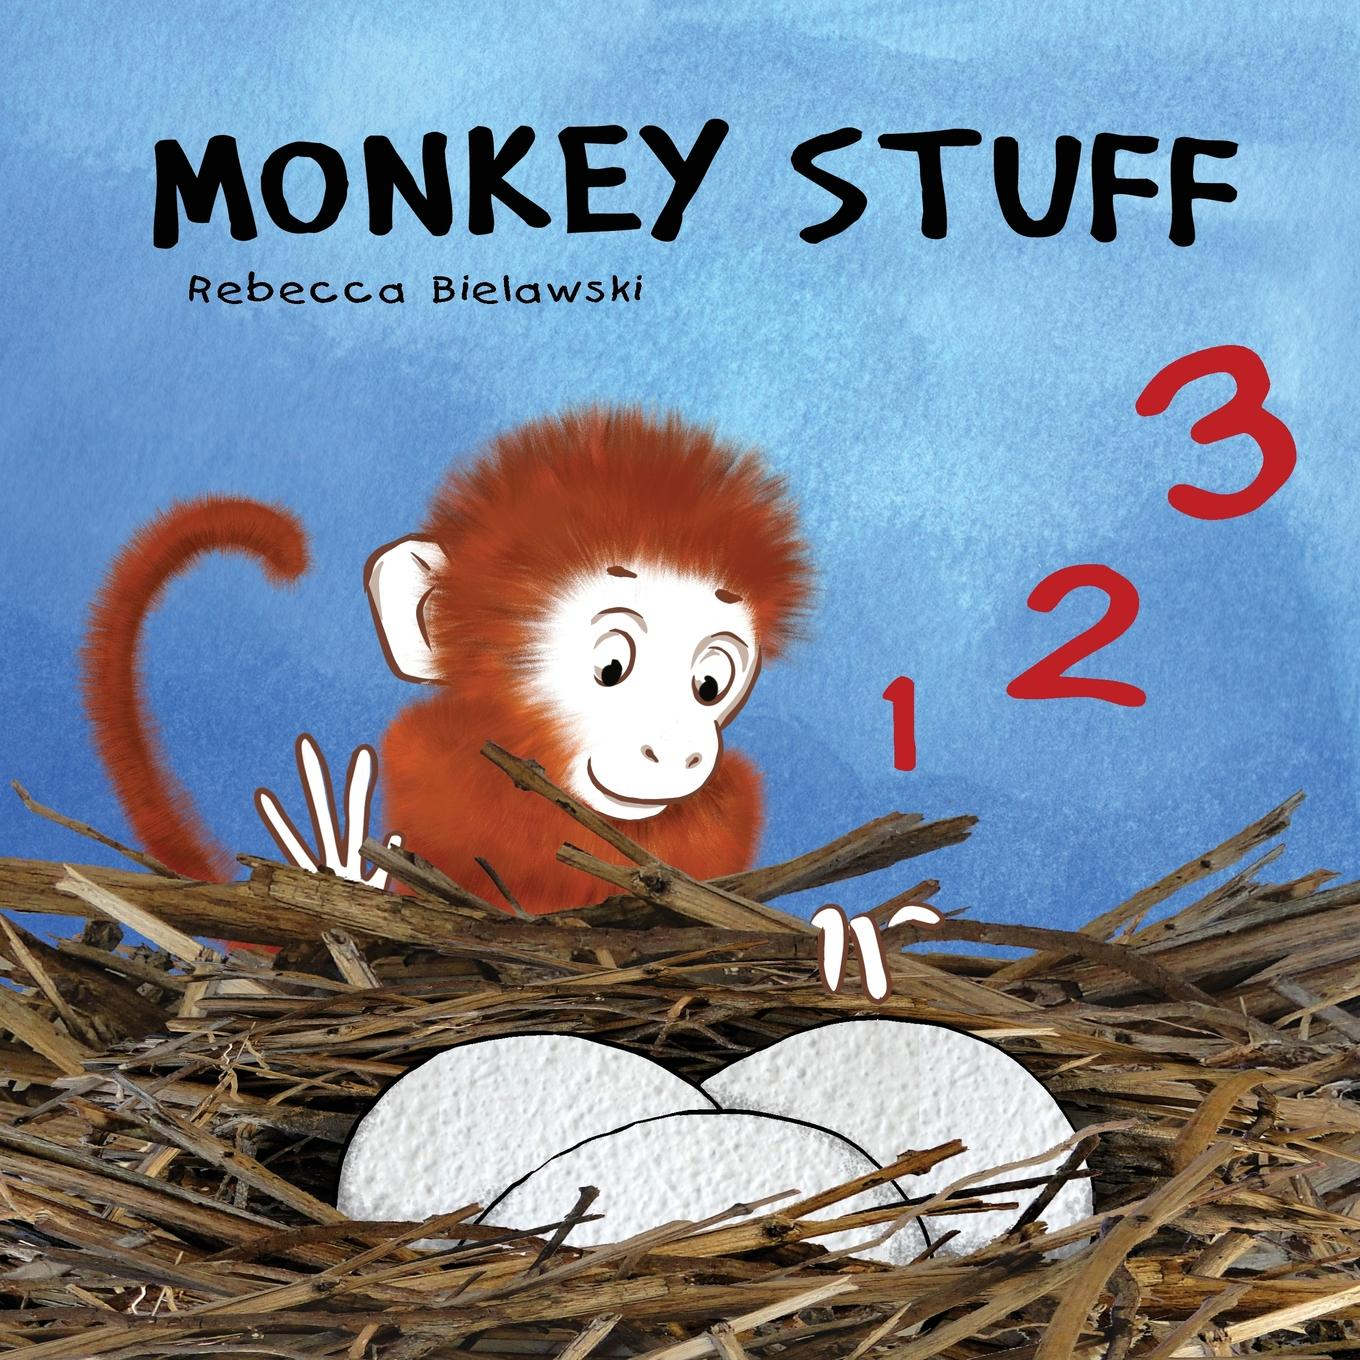 Monkey Stuff : A Children's Rhyming Counting Book